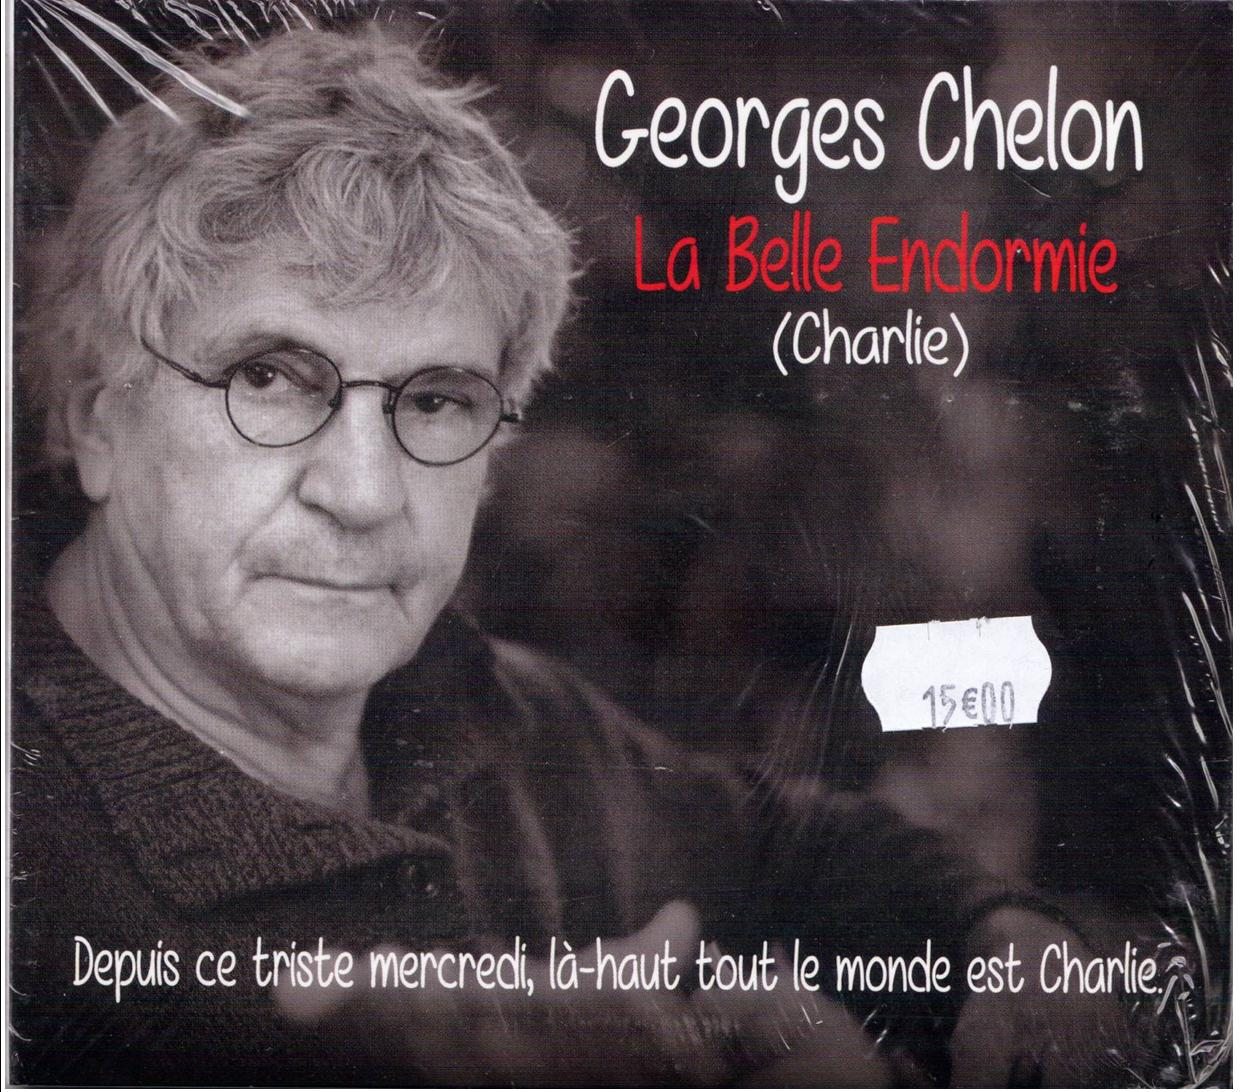 Chelon belle endormie